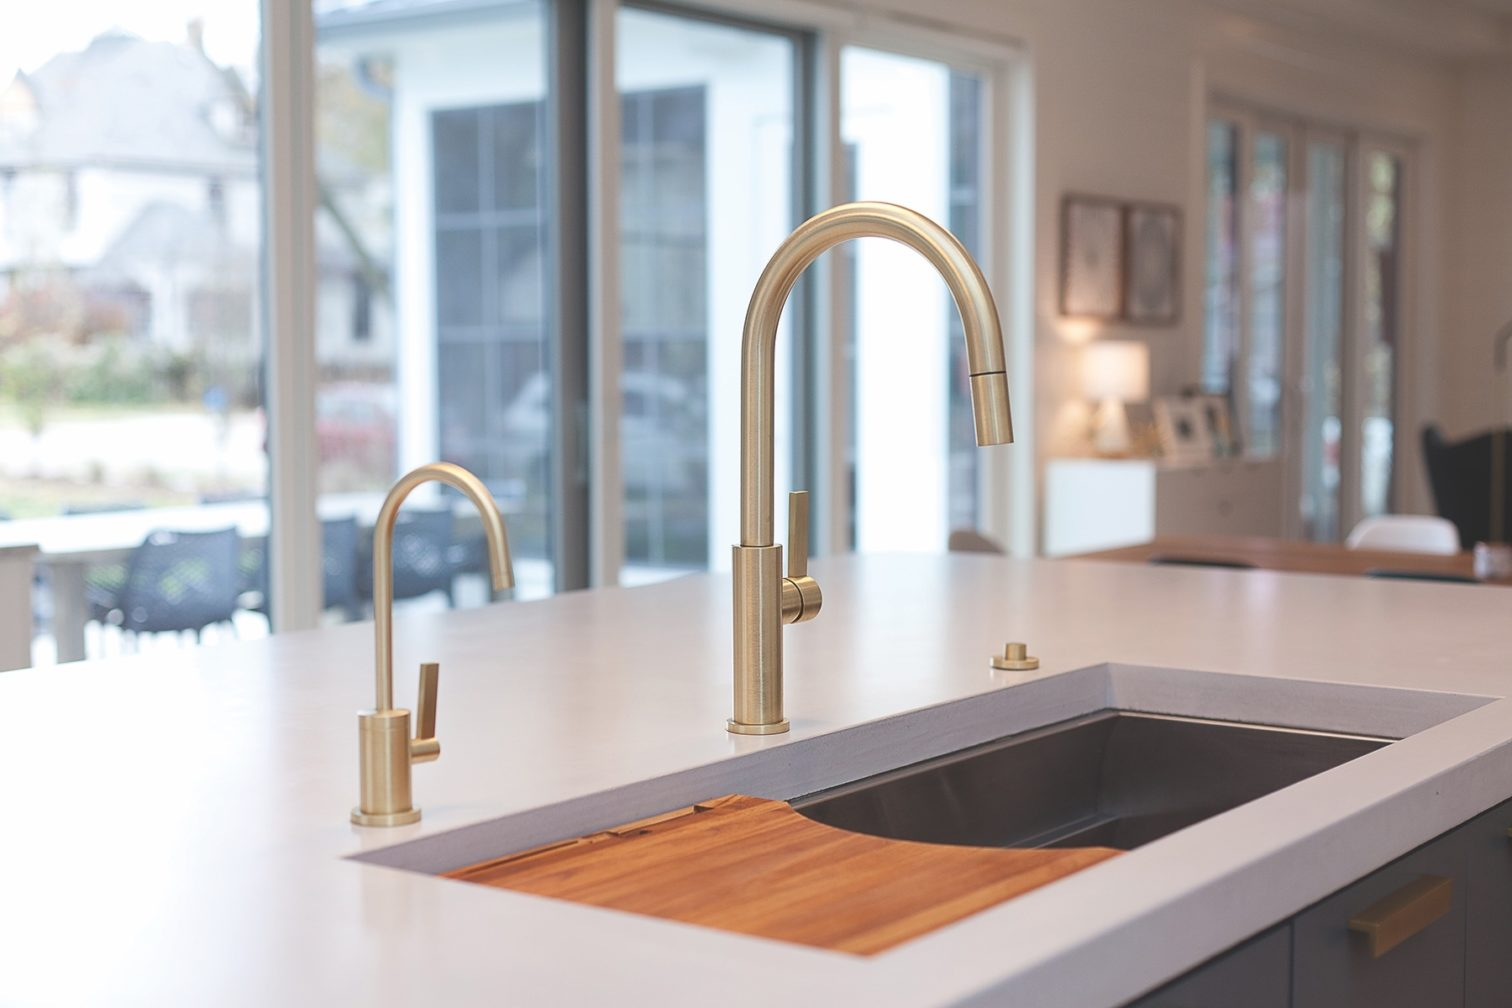 Corsano pull-down kitchen faucet in brass with accessories on sink